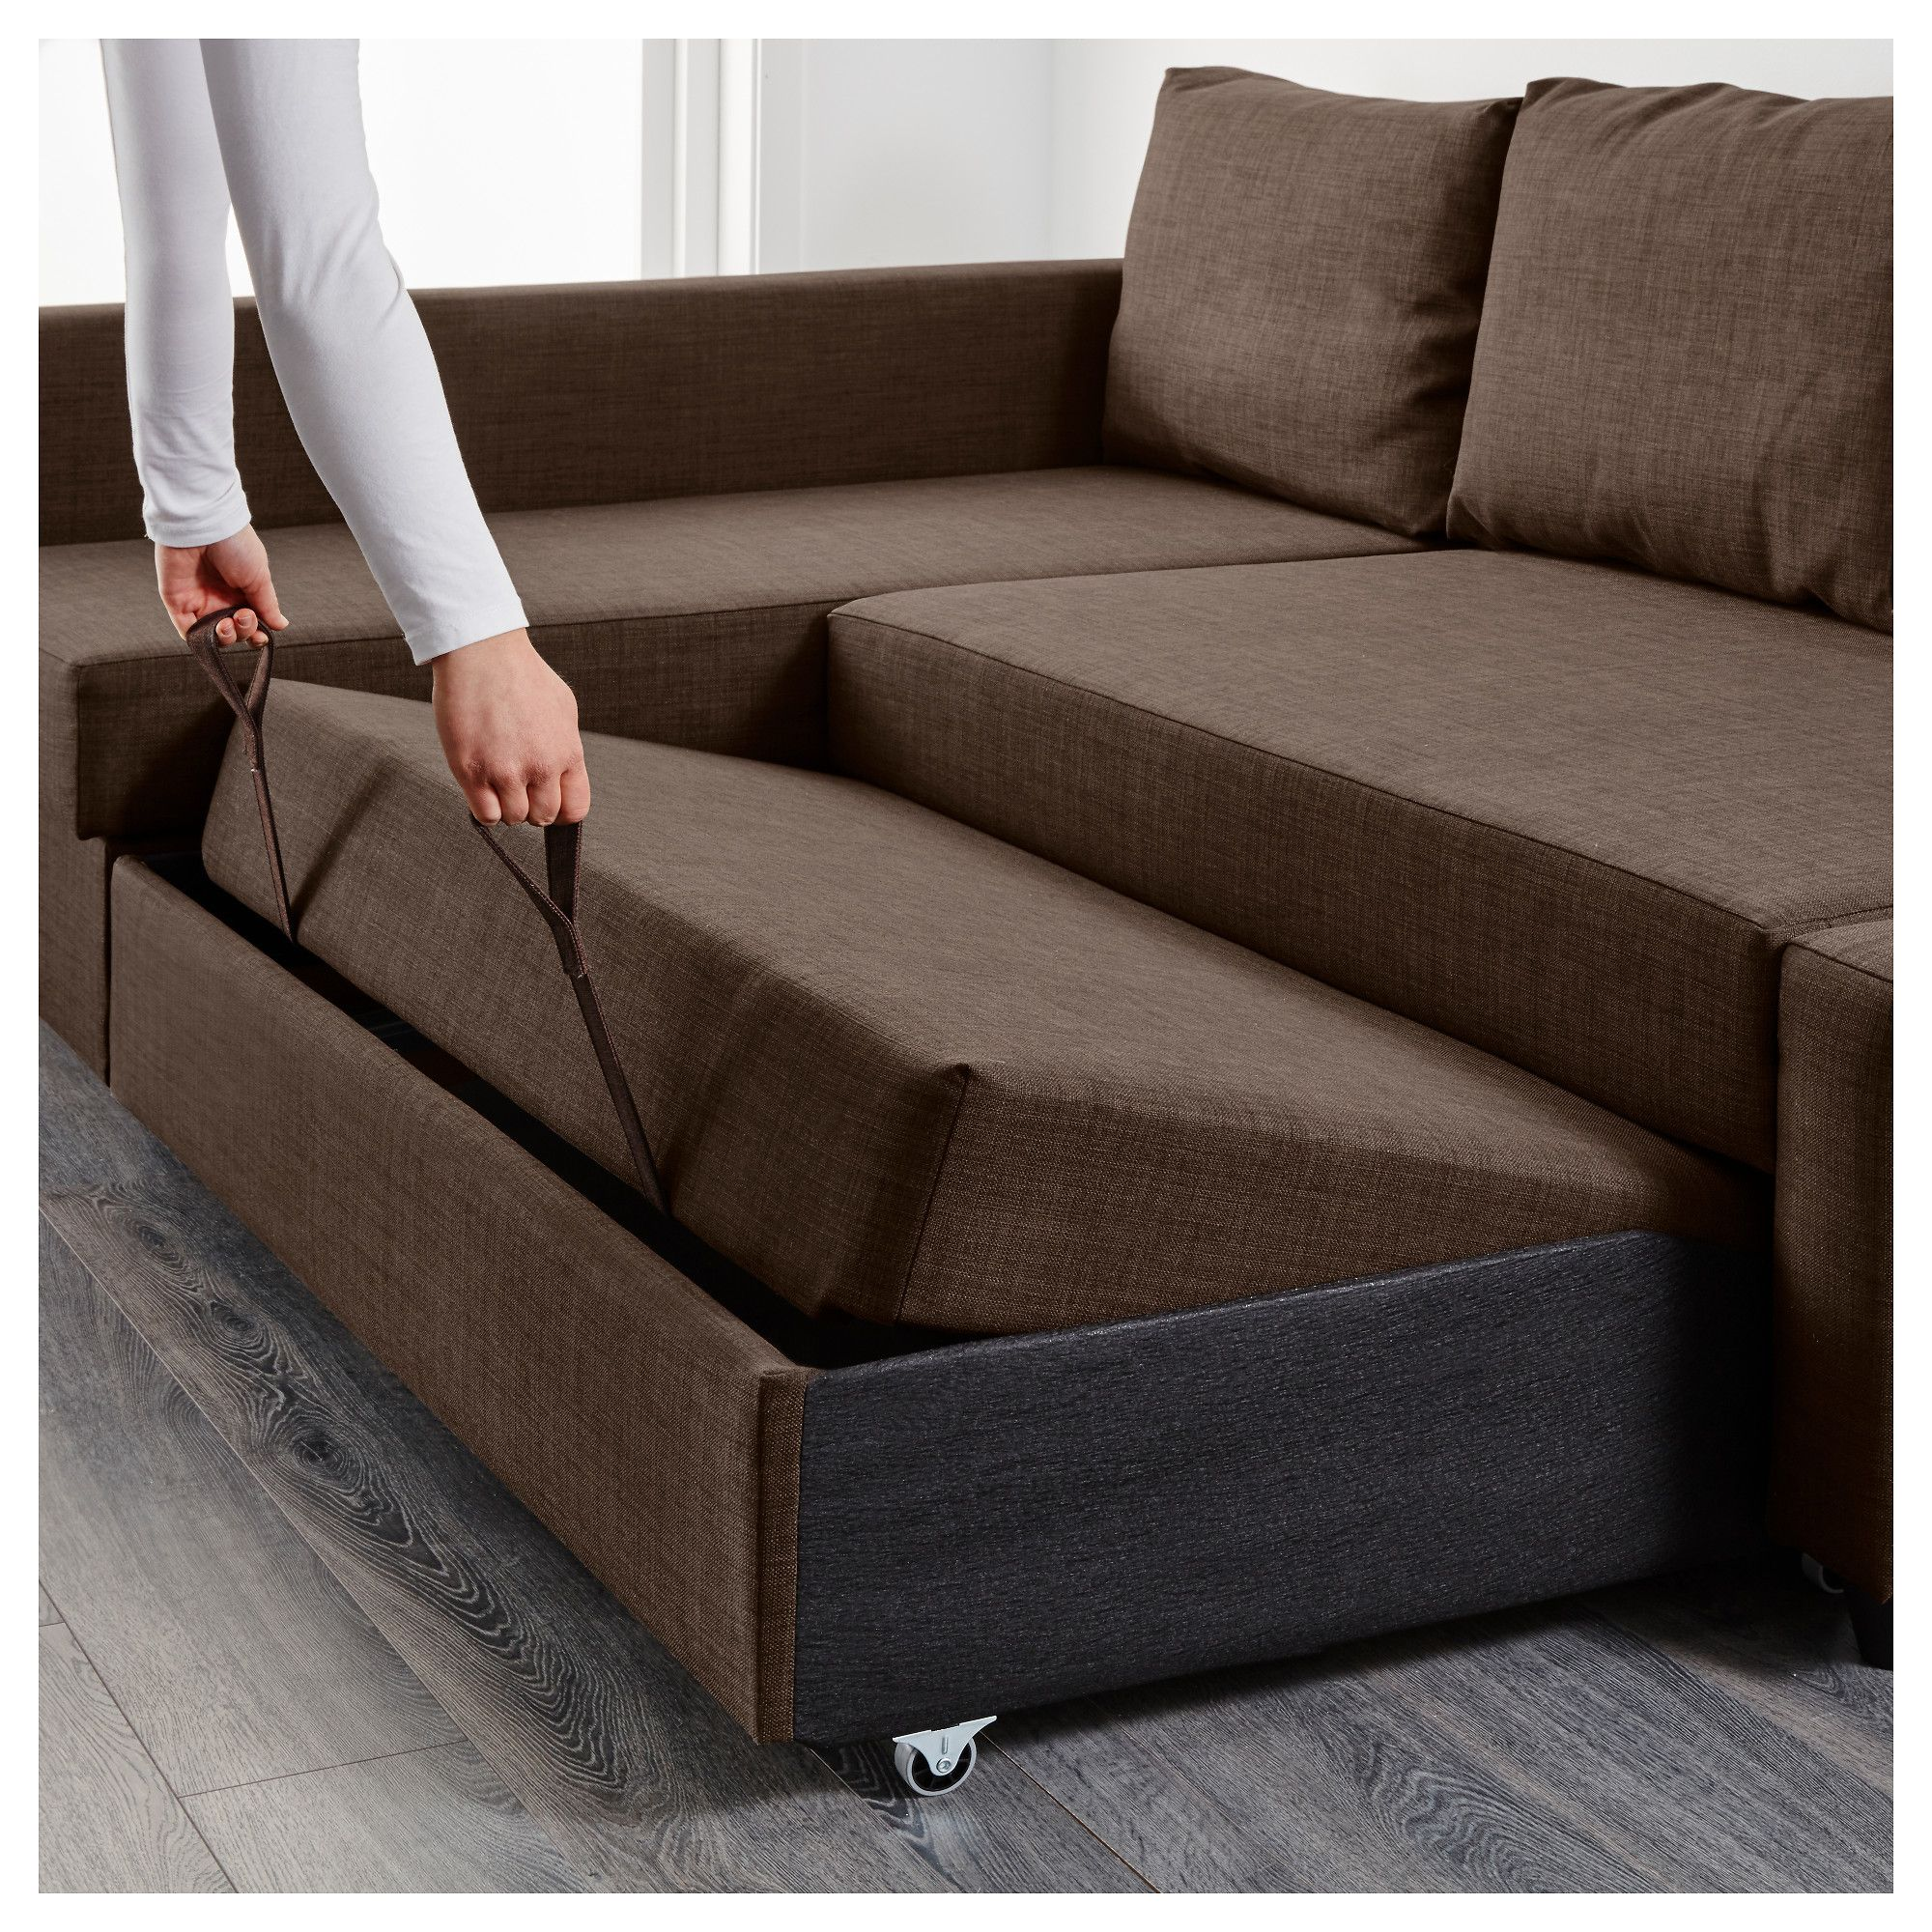 Furniture And Home Furnishings In 2019 Corner Sofa Bed